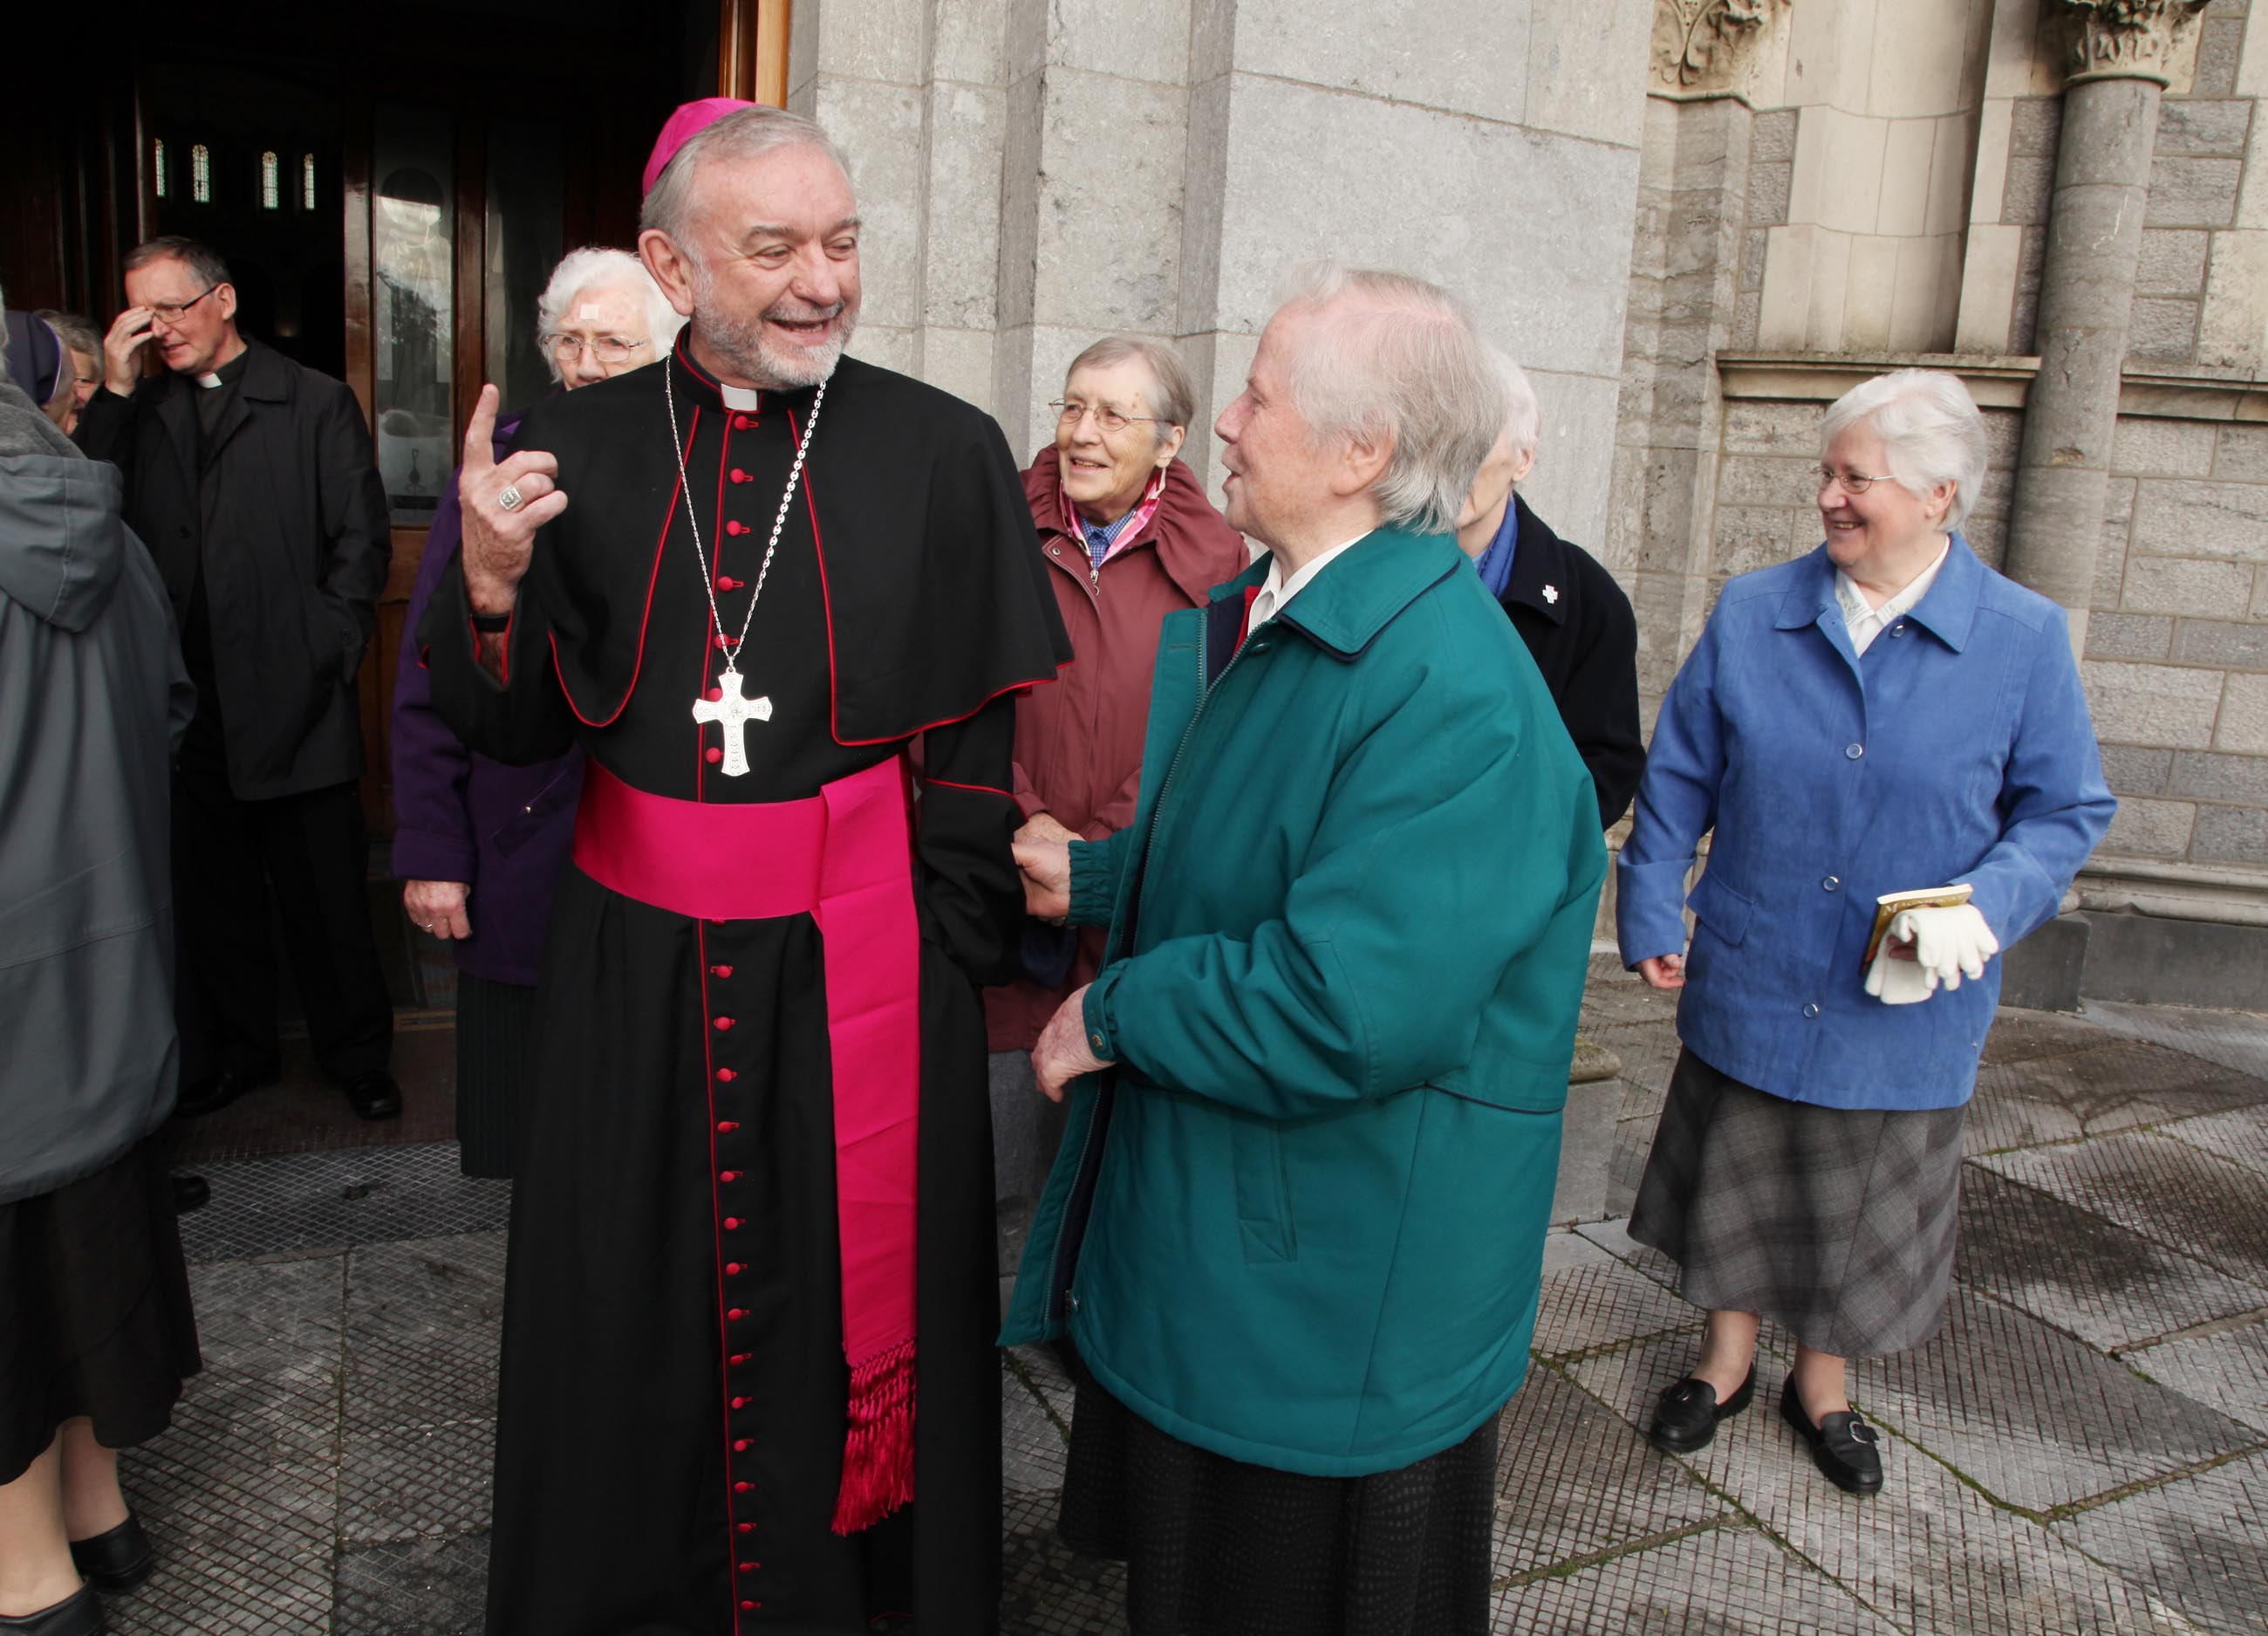 Bishop kieran oreilly to lead cashel emly catholicireland bishop kieran oreilly sma who will be the new archbishop of cashel and emly m4hsunfo